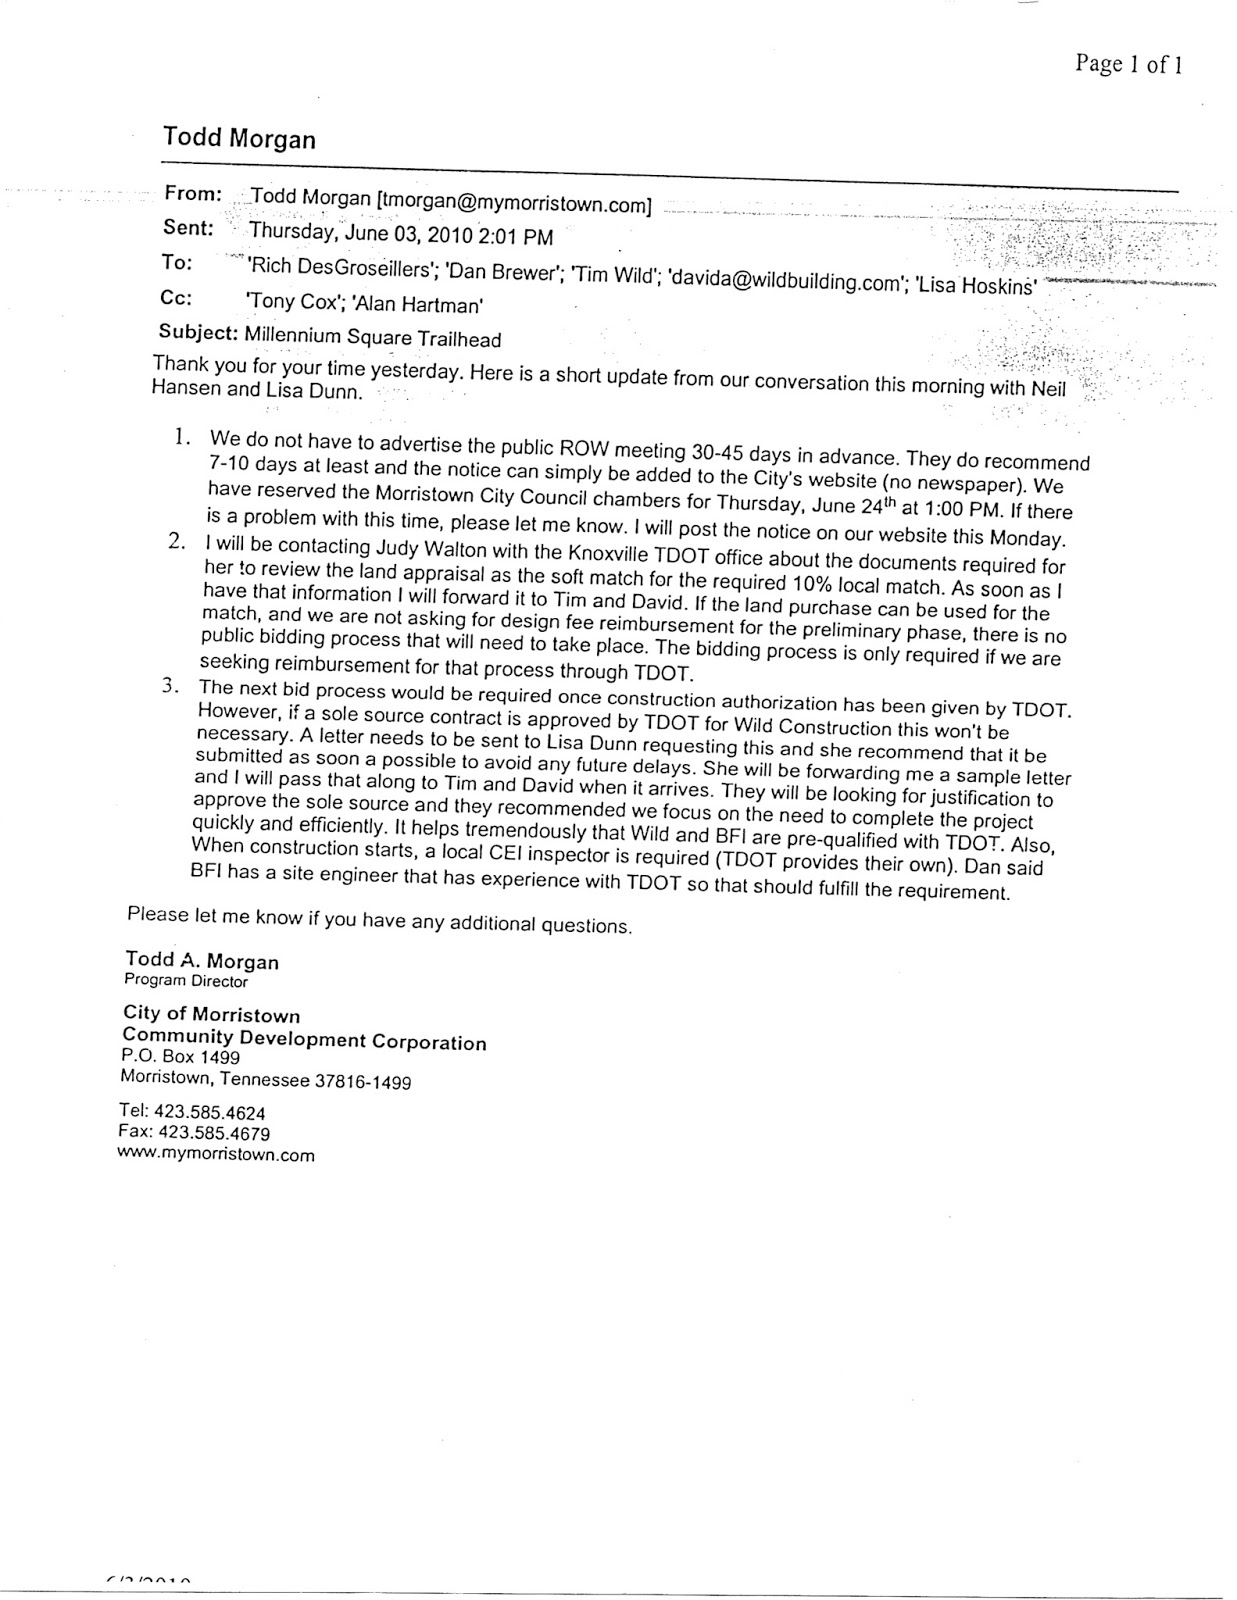 sole source letter millennium square bid shopping and conflicts of interest 24922 | M20 Email from City T Morgan 060310 to Arch D Brewer WBCs David and Tim Wild and City Adm Tony Cox Bid process is next UNLESS sole source approved for Wild TDOTs Dunn sending sole source letter